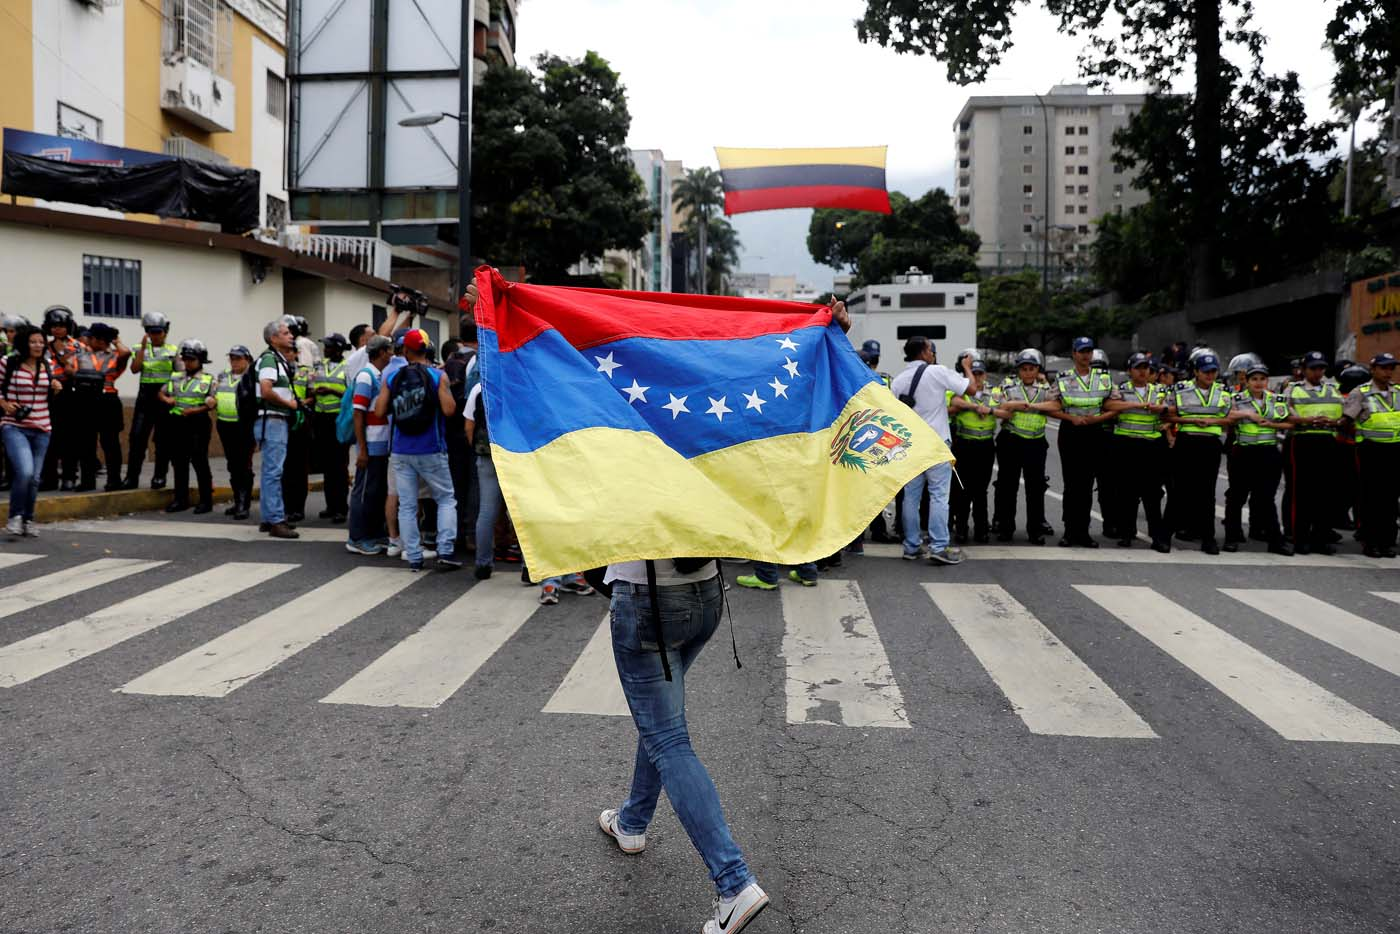 A woman holds up a flag during a women's march to protest against President Nicolas Maduro's government in Caracas, Venezuela May 6, 2017. REUTERS/Carlos Garcia Rawlins